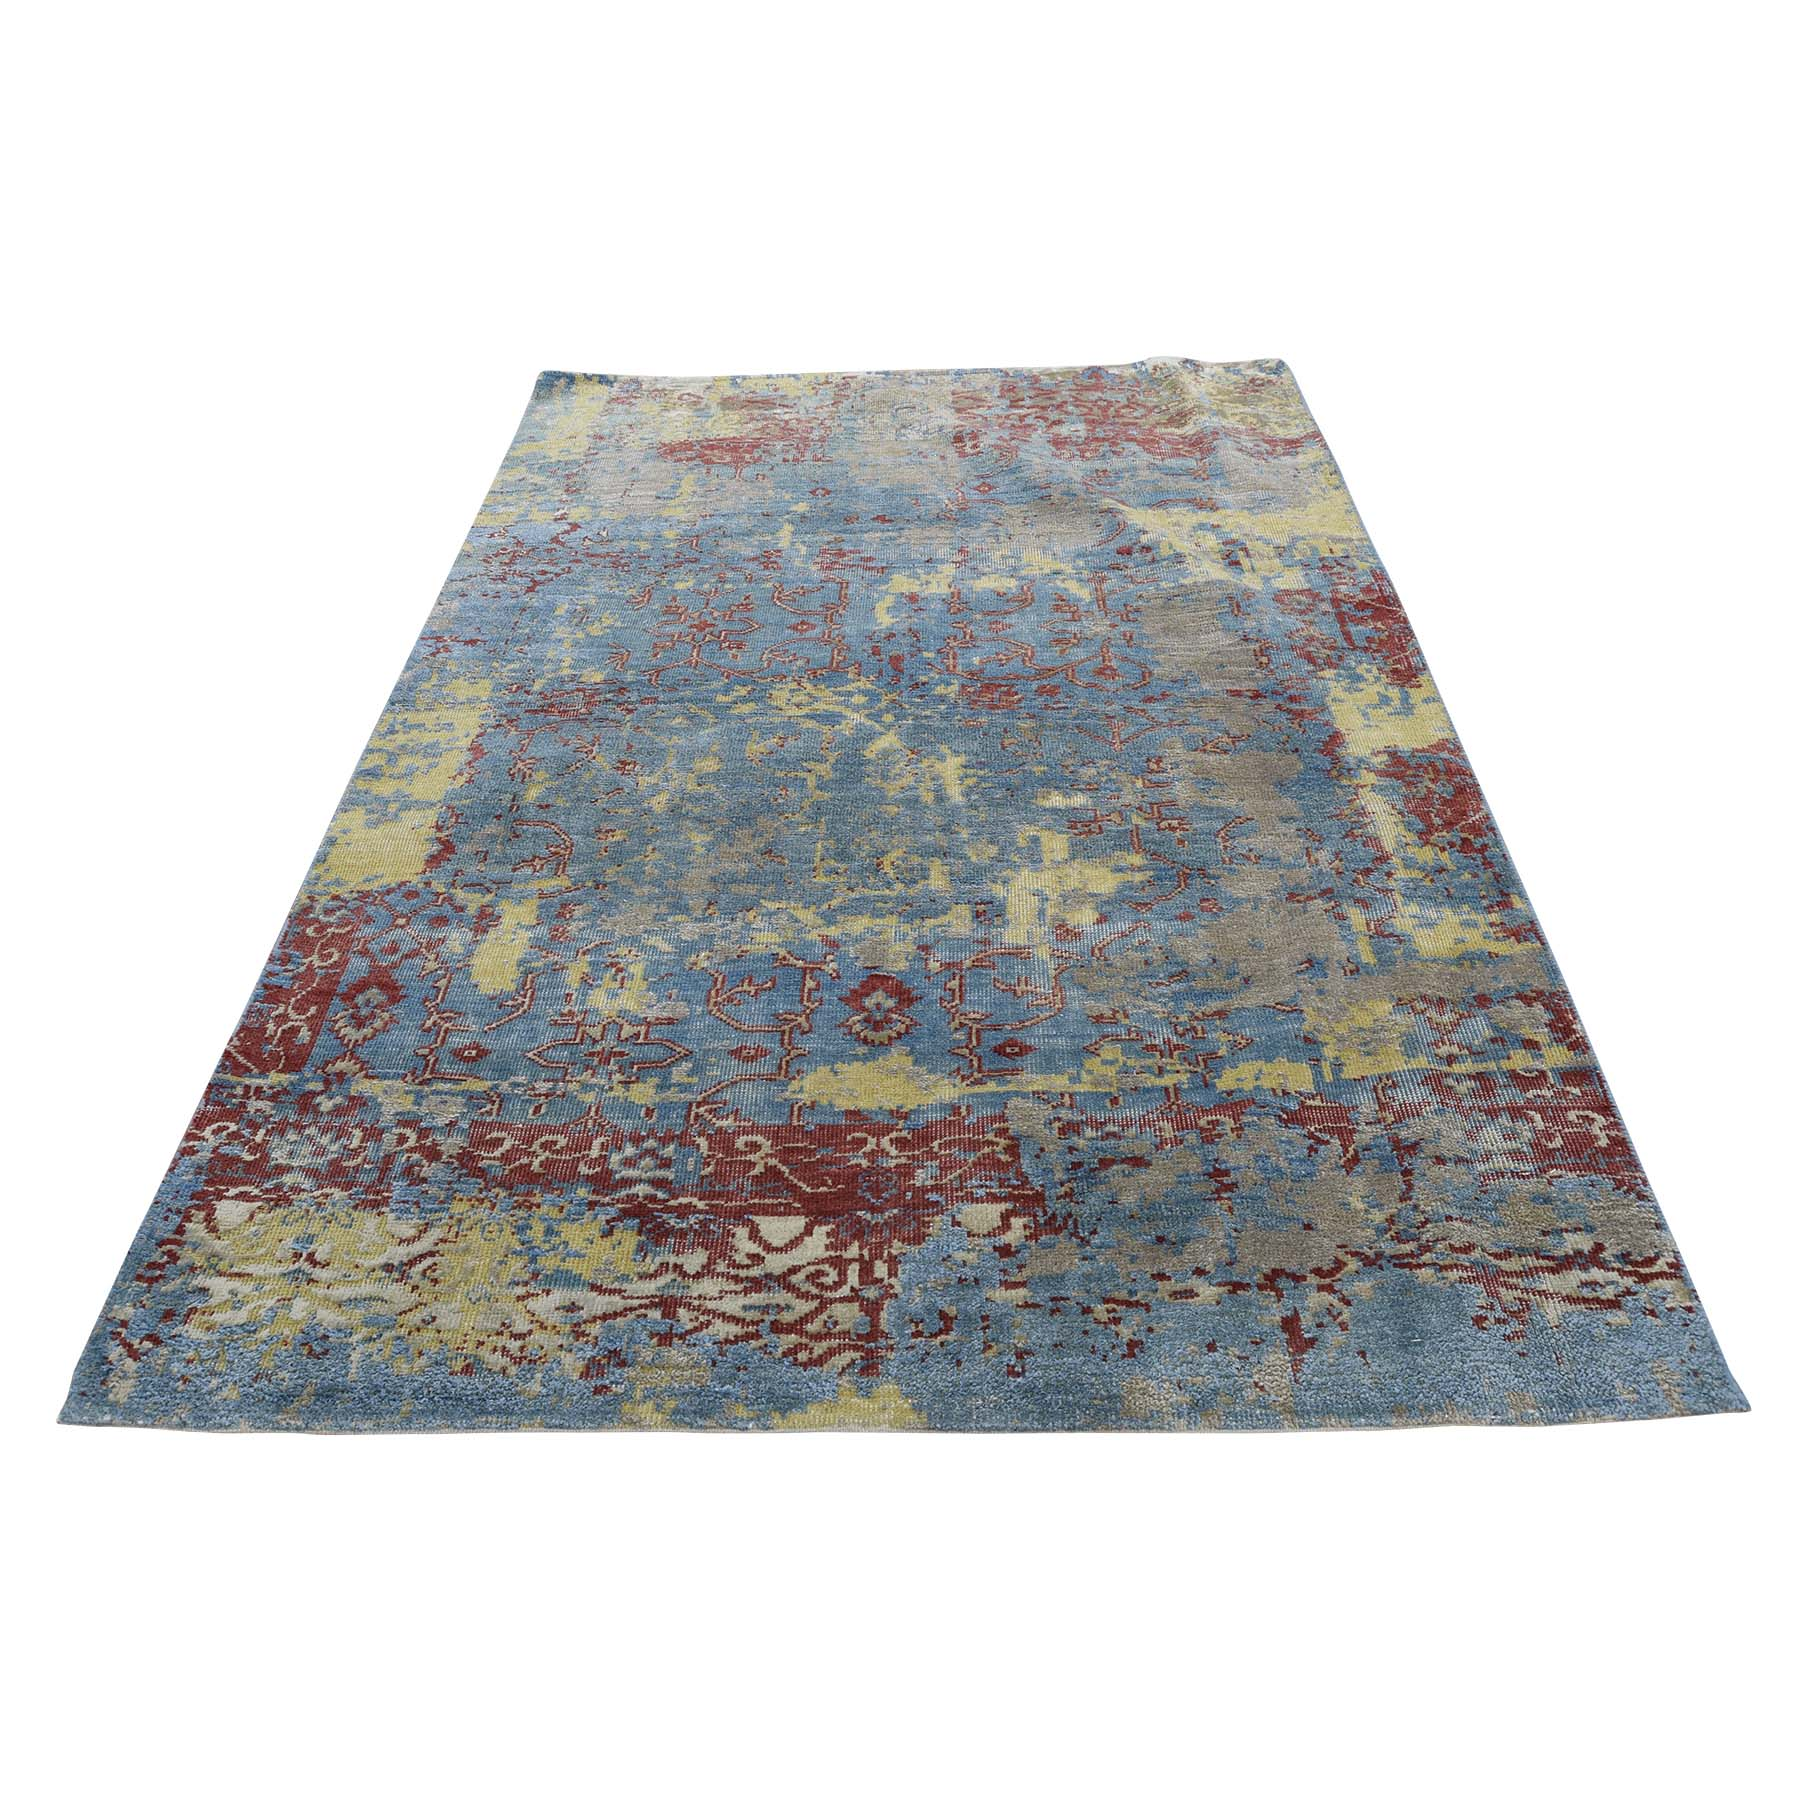 Click For More Images310X510 Hand Knotted Silk With Oxidized Wool Broken